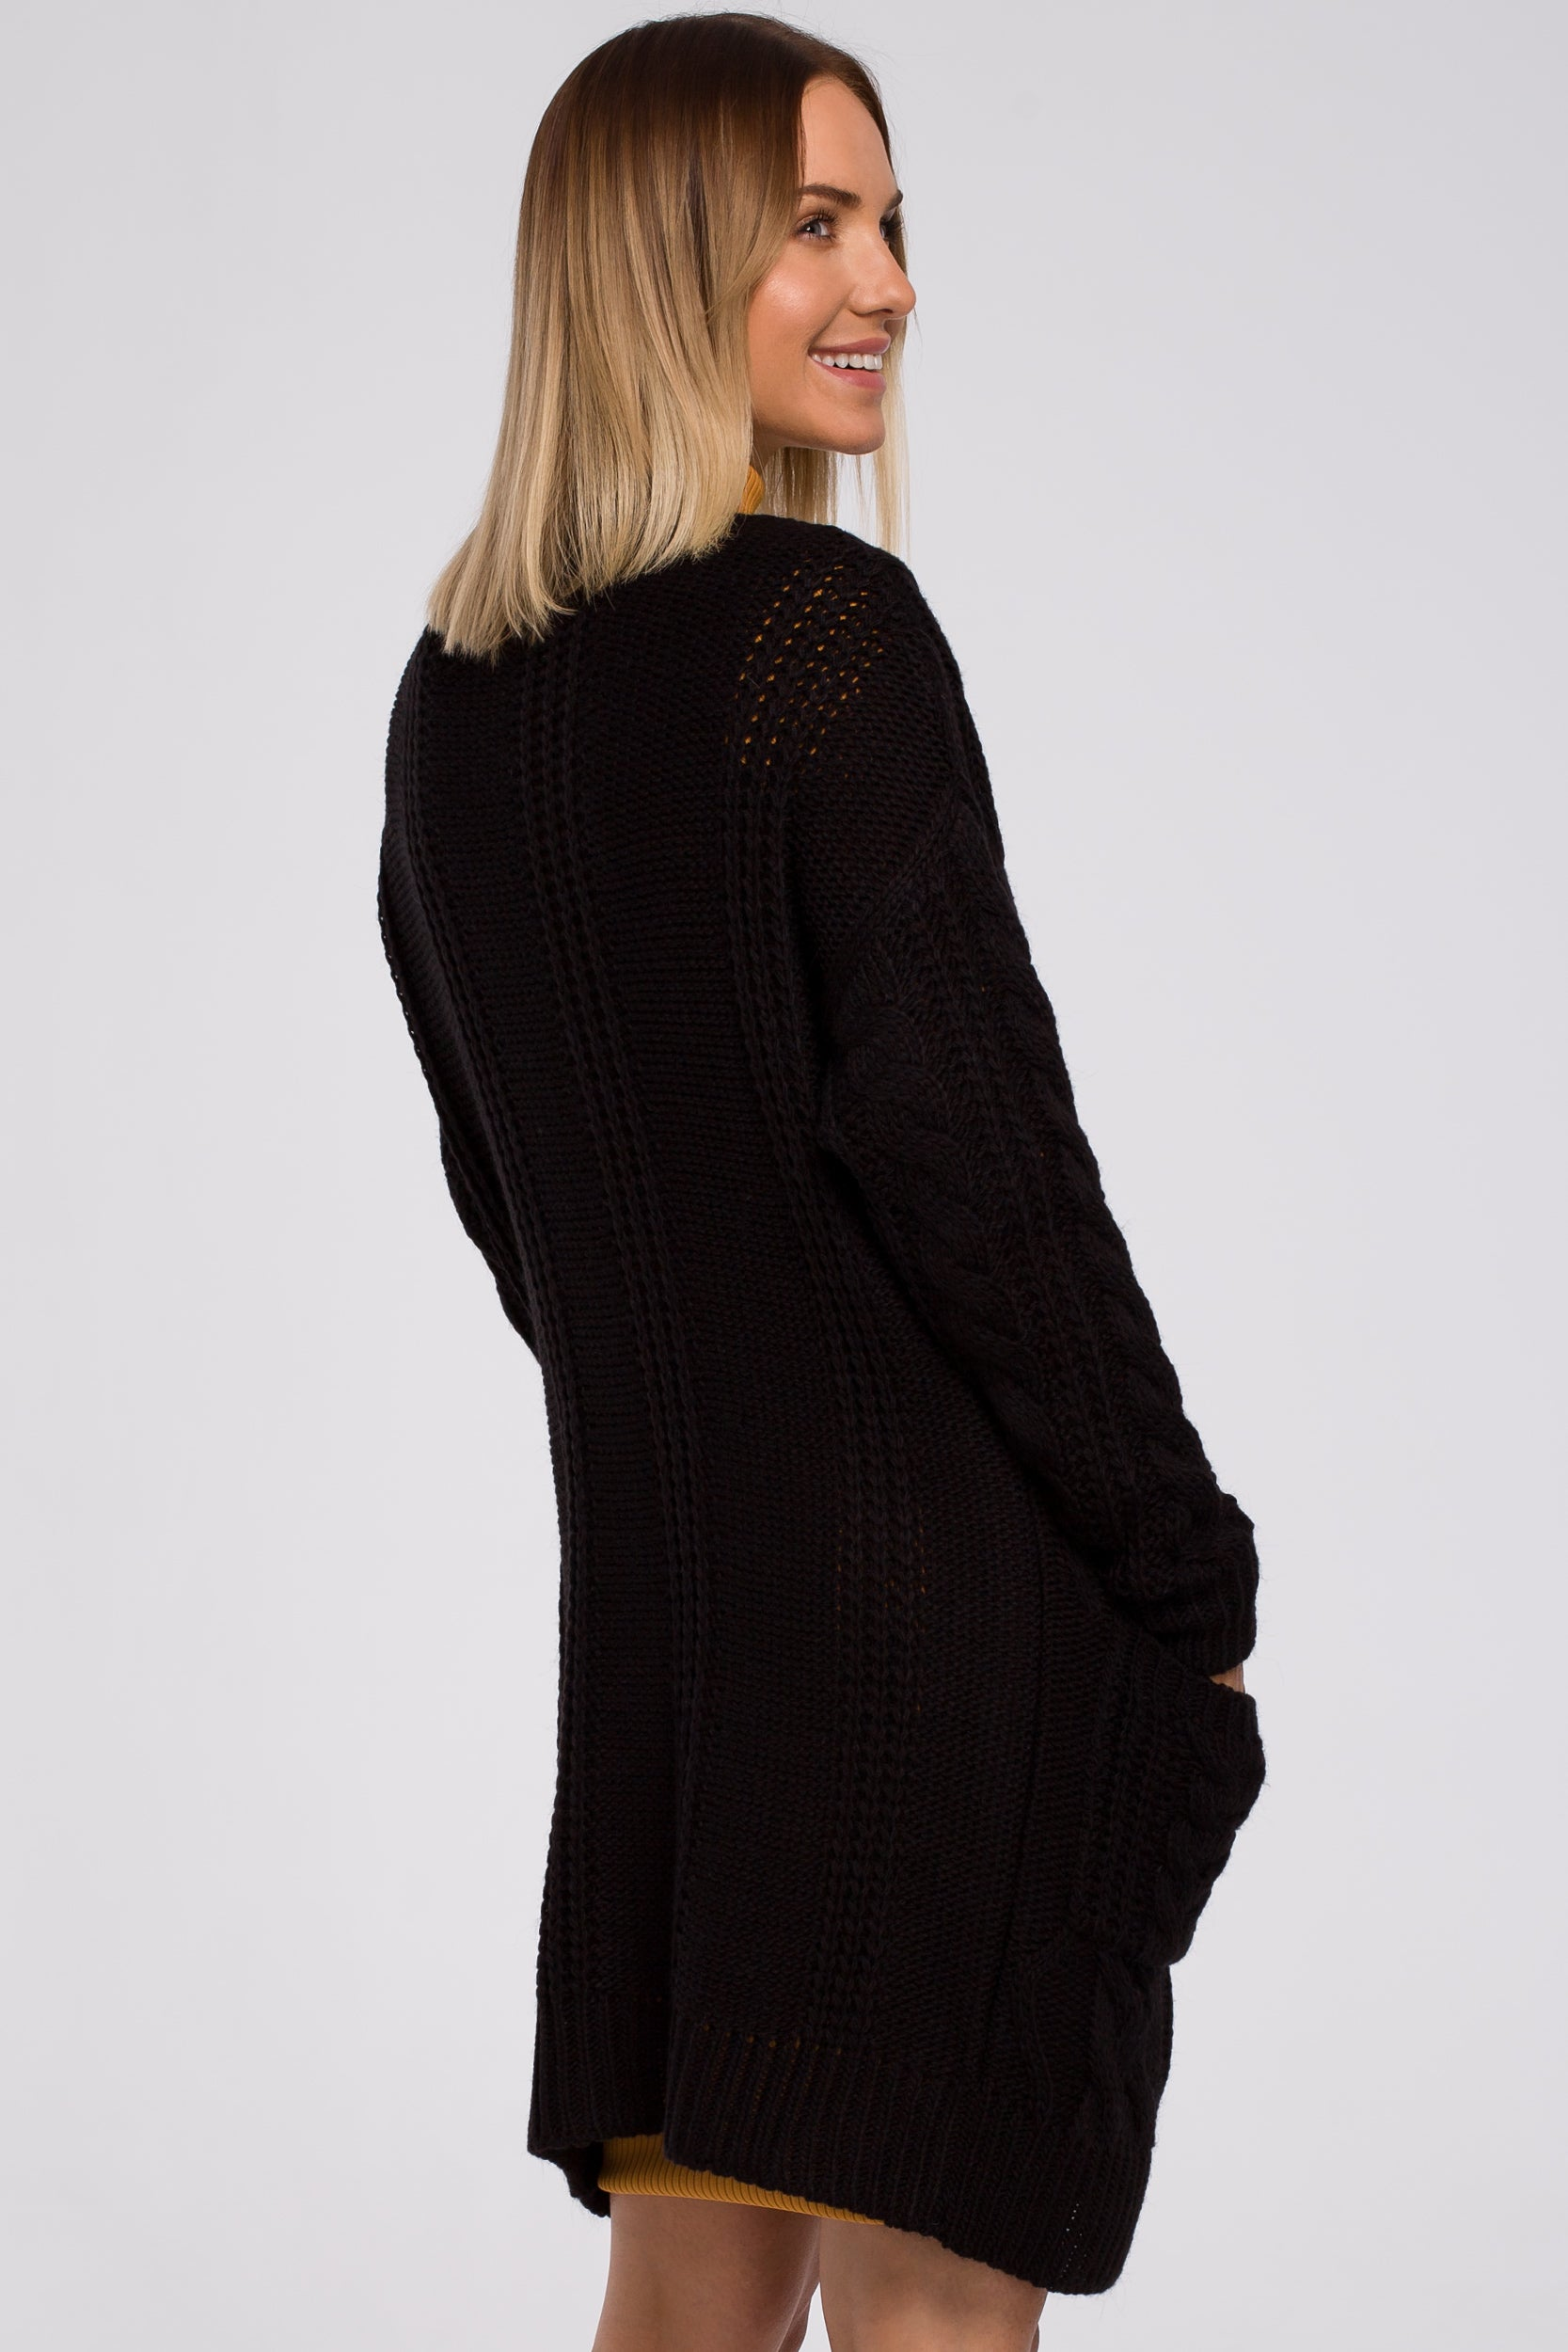 Open Front Black Cardigan With Braids - So Chic Boutique